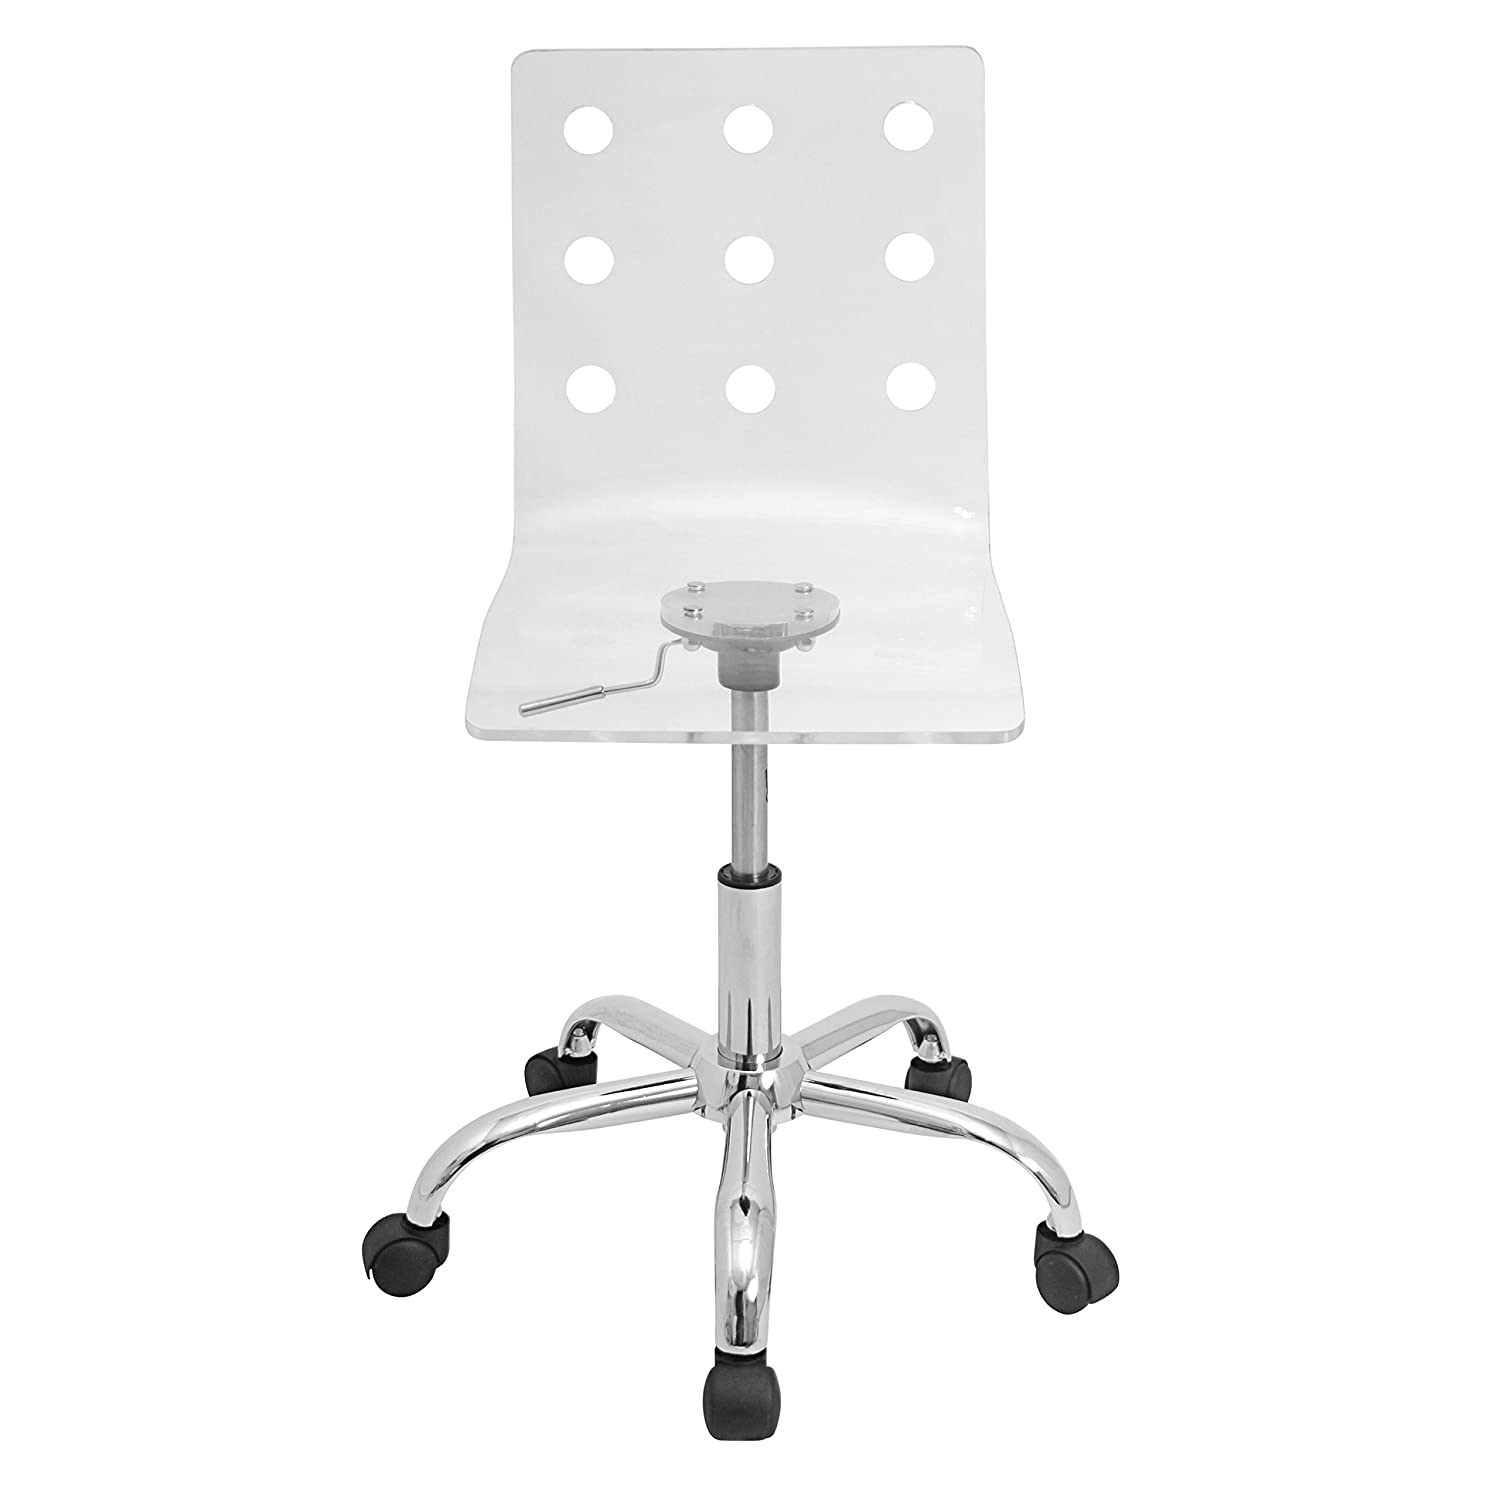 Acrylic office chair - Amazon Com Woybr Ofc Tw Cl Acrylic Chrome Swiss Office Chair Kitchen Dining